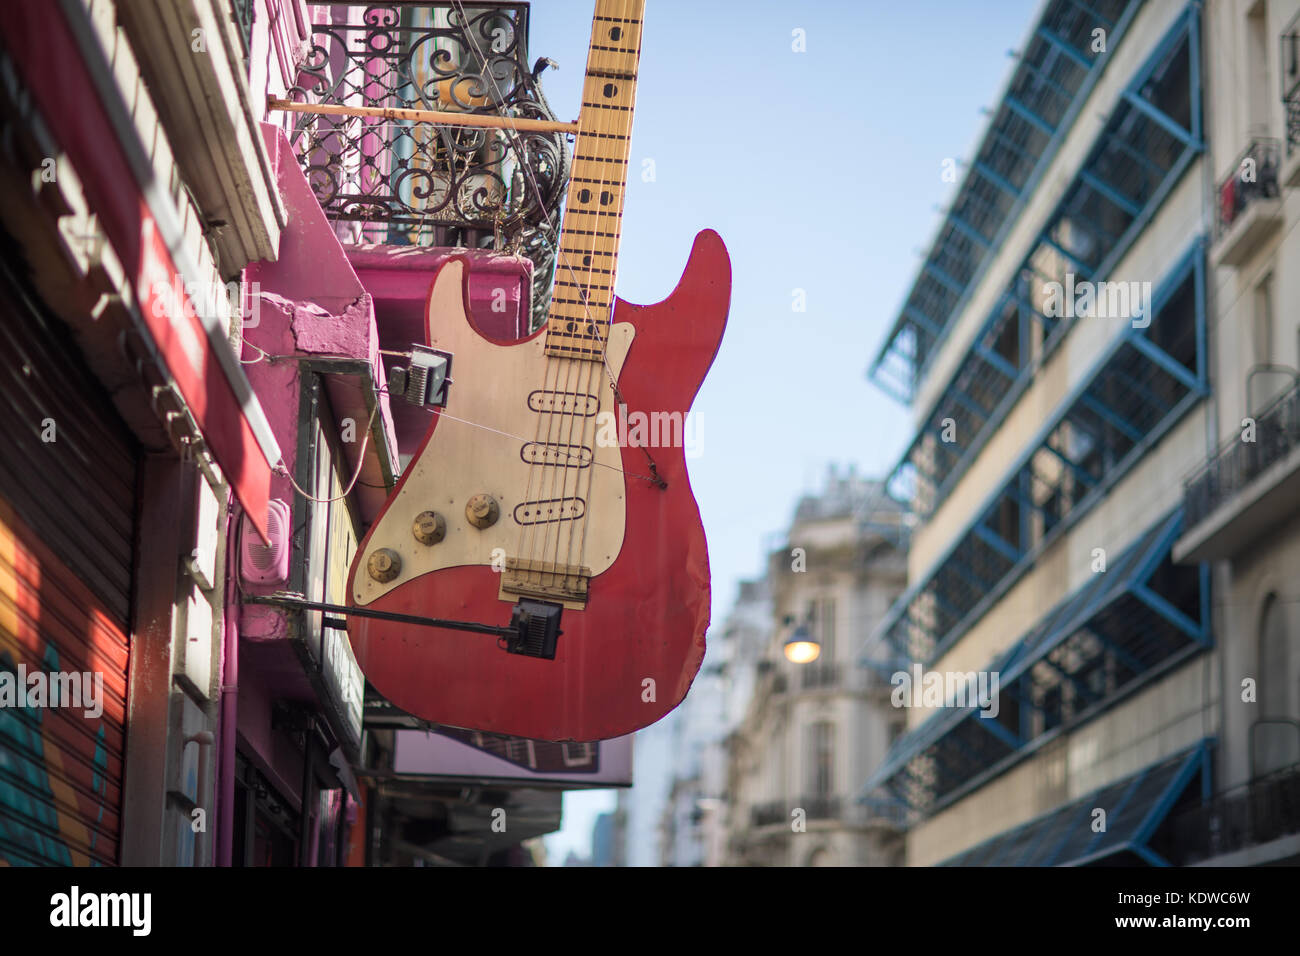 Guitar shop, Talcalhuano, Buenos Aires, Argentina - Stock Image